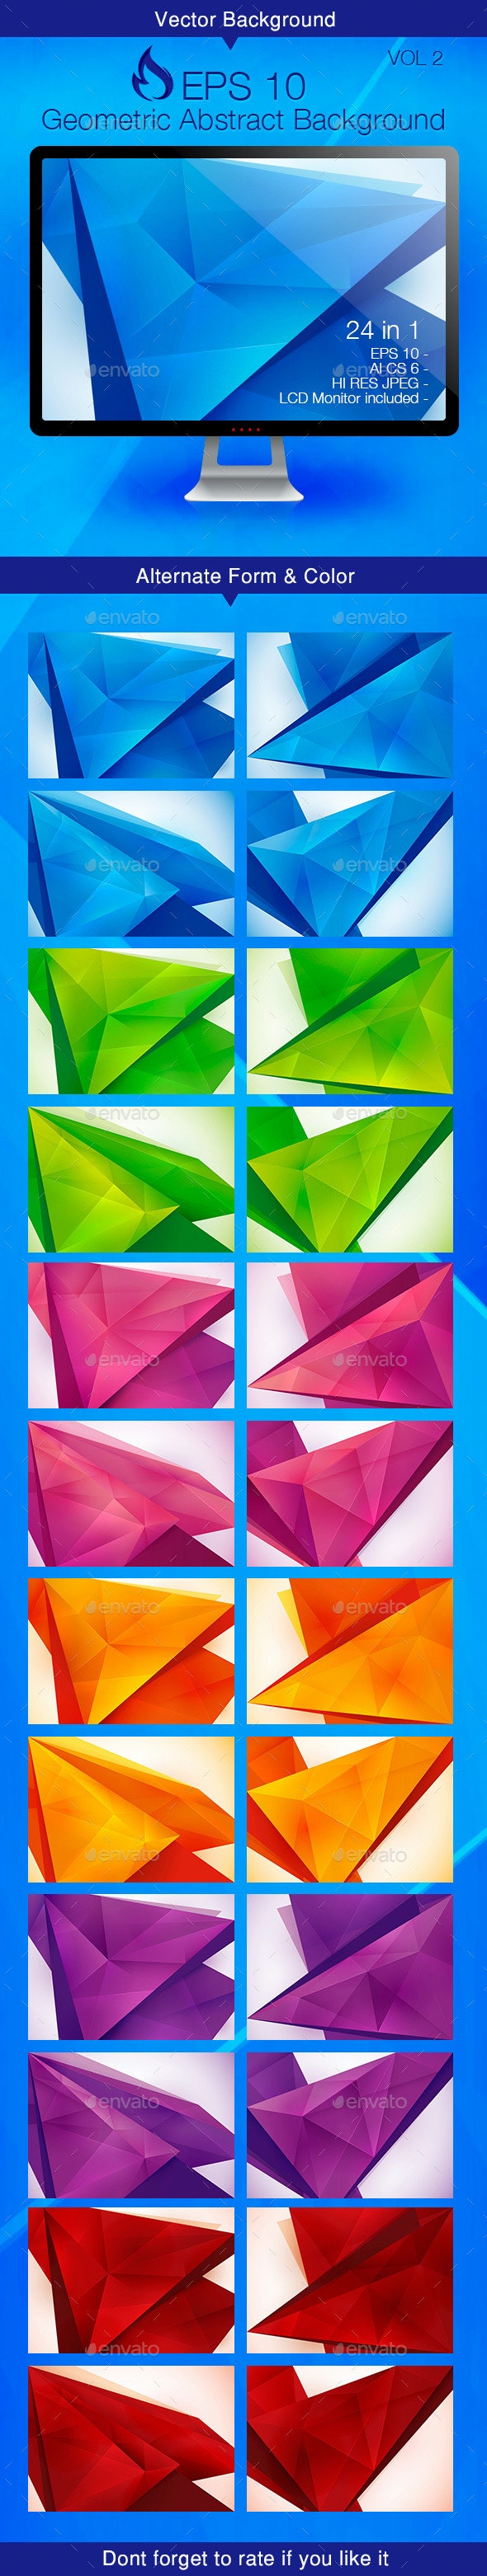 Geometric Abstract Background - Vol 2 - Backgrounds Decorative